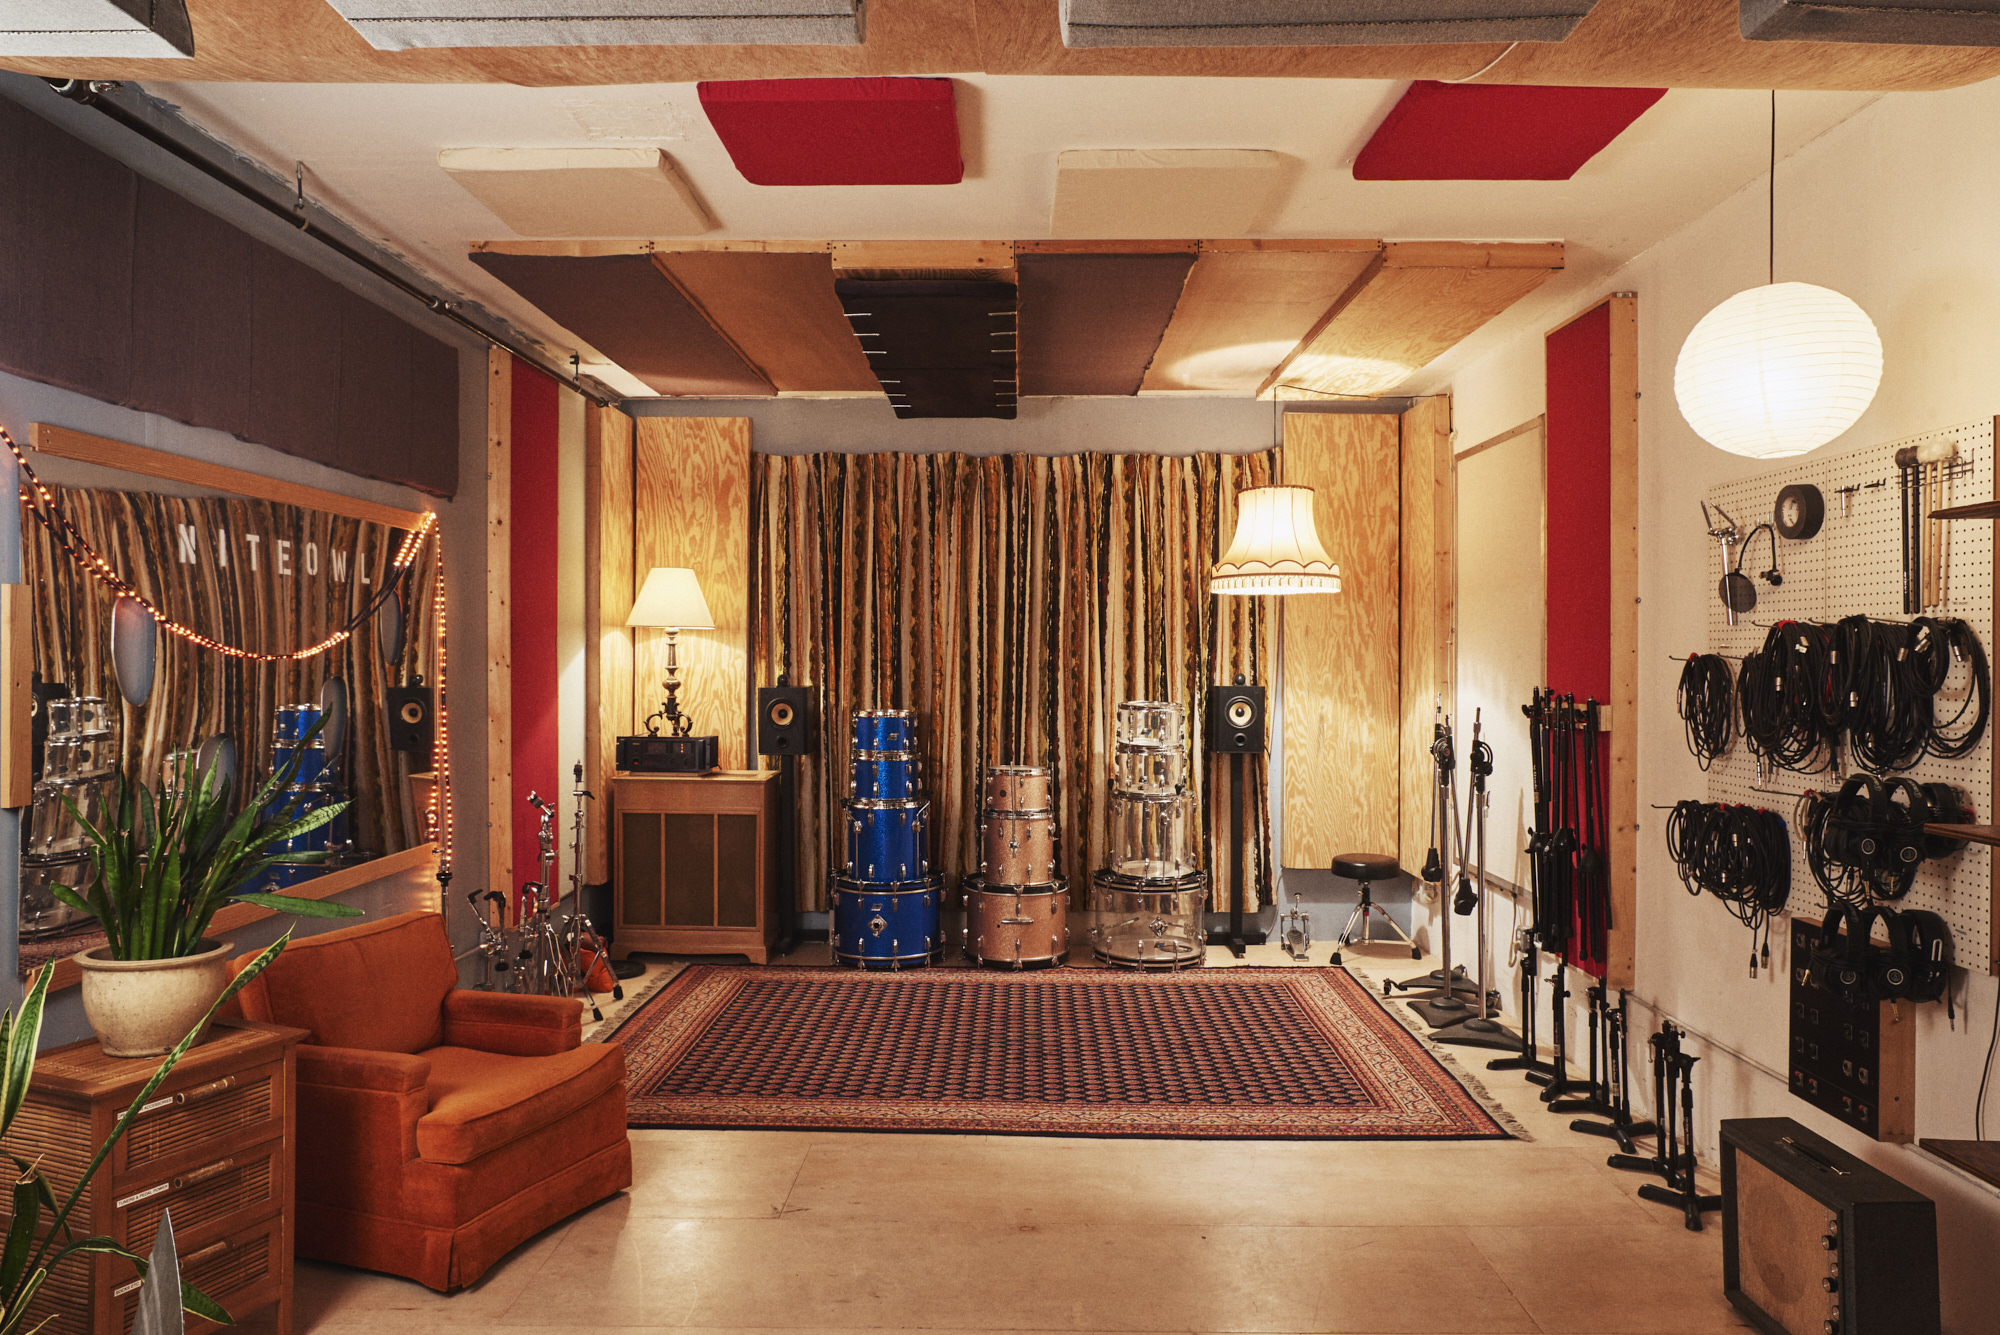 The seaside lounge recording studios brooklyn new york vibe for days for Recording studio live room design